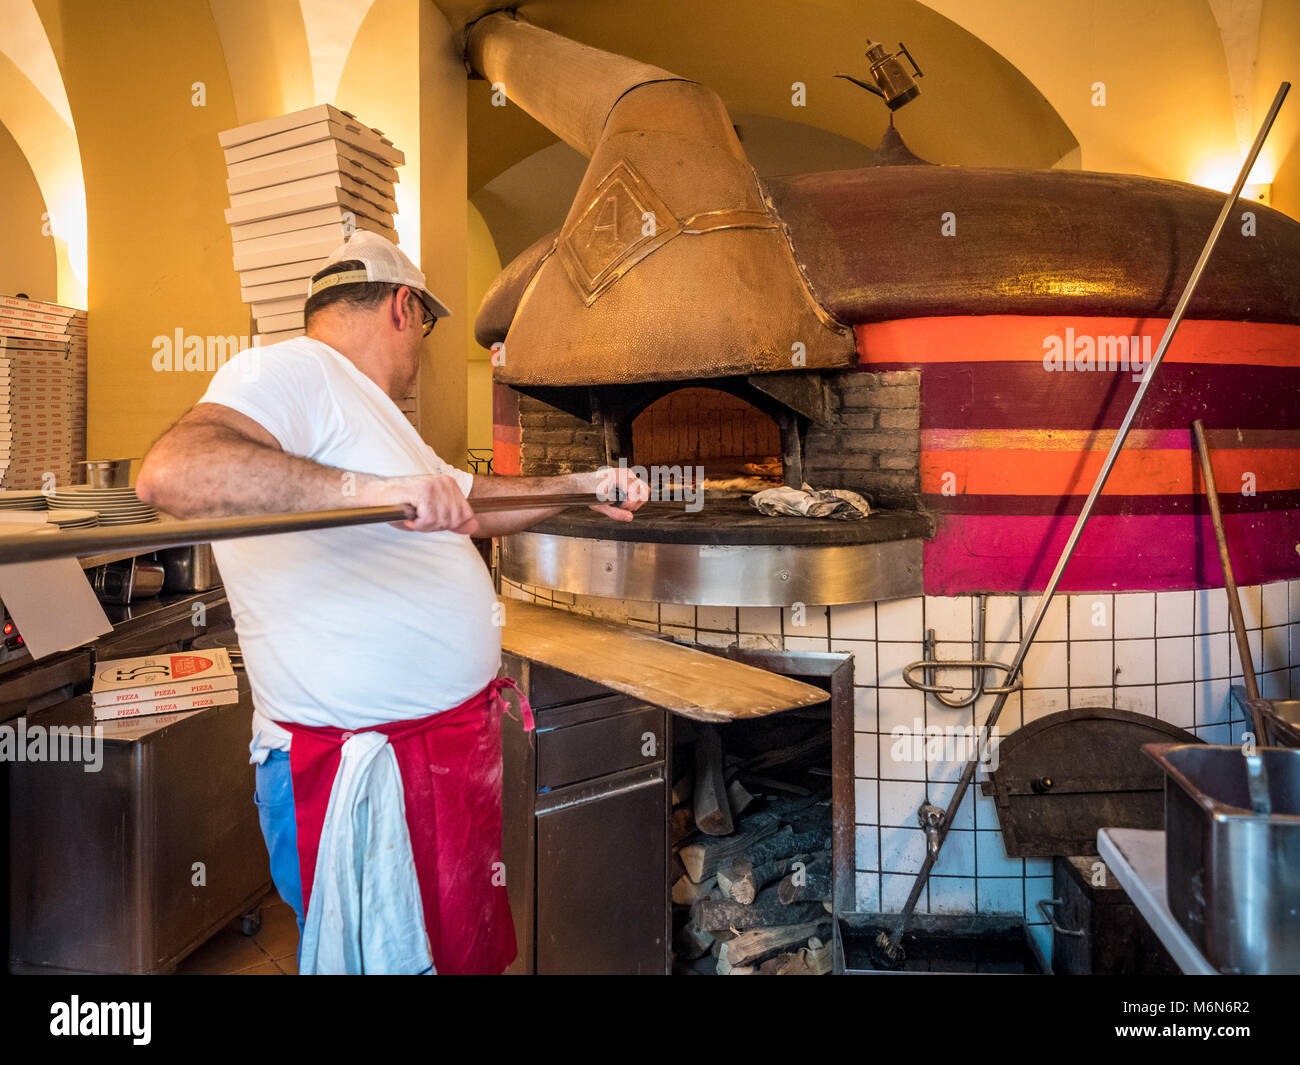 Pizza chef working with traditional Pizza oven - Stock Image